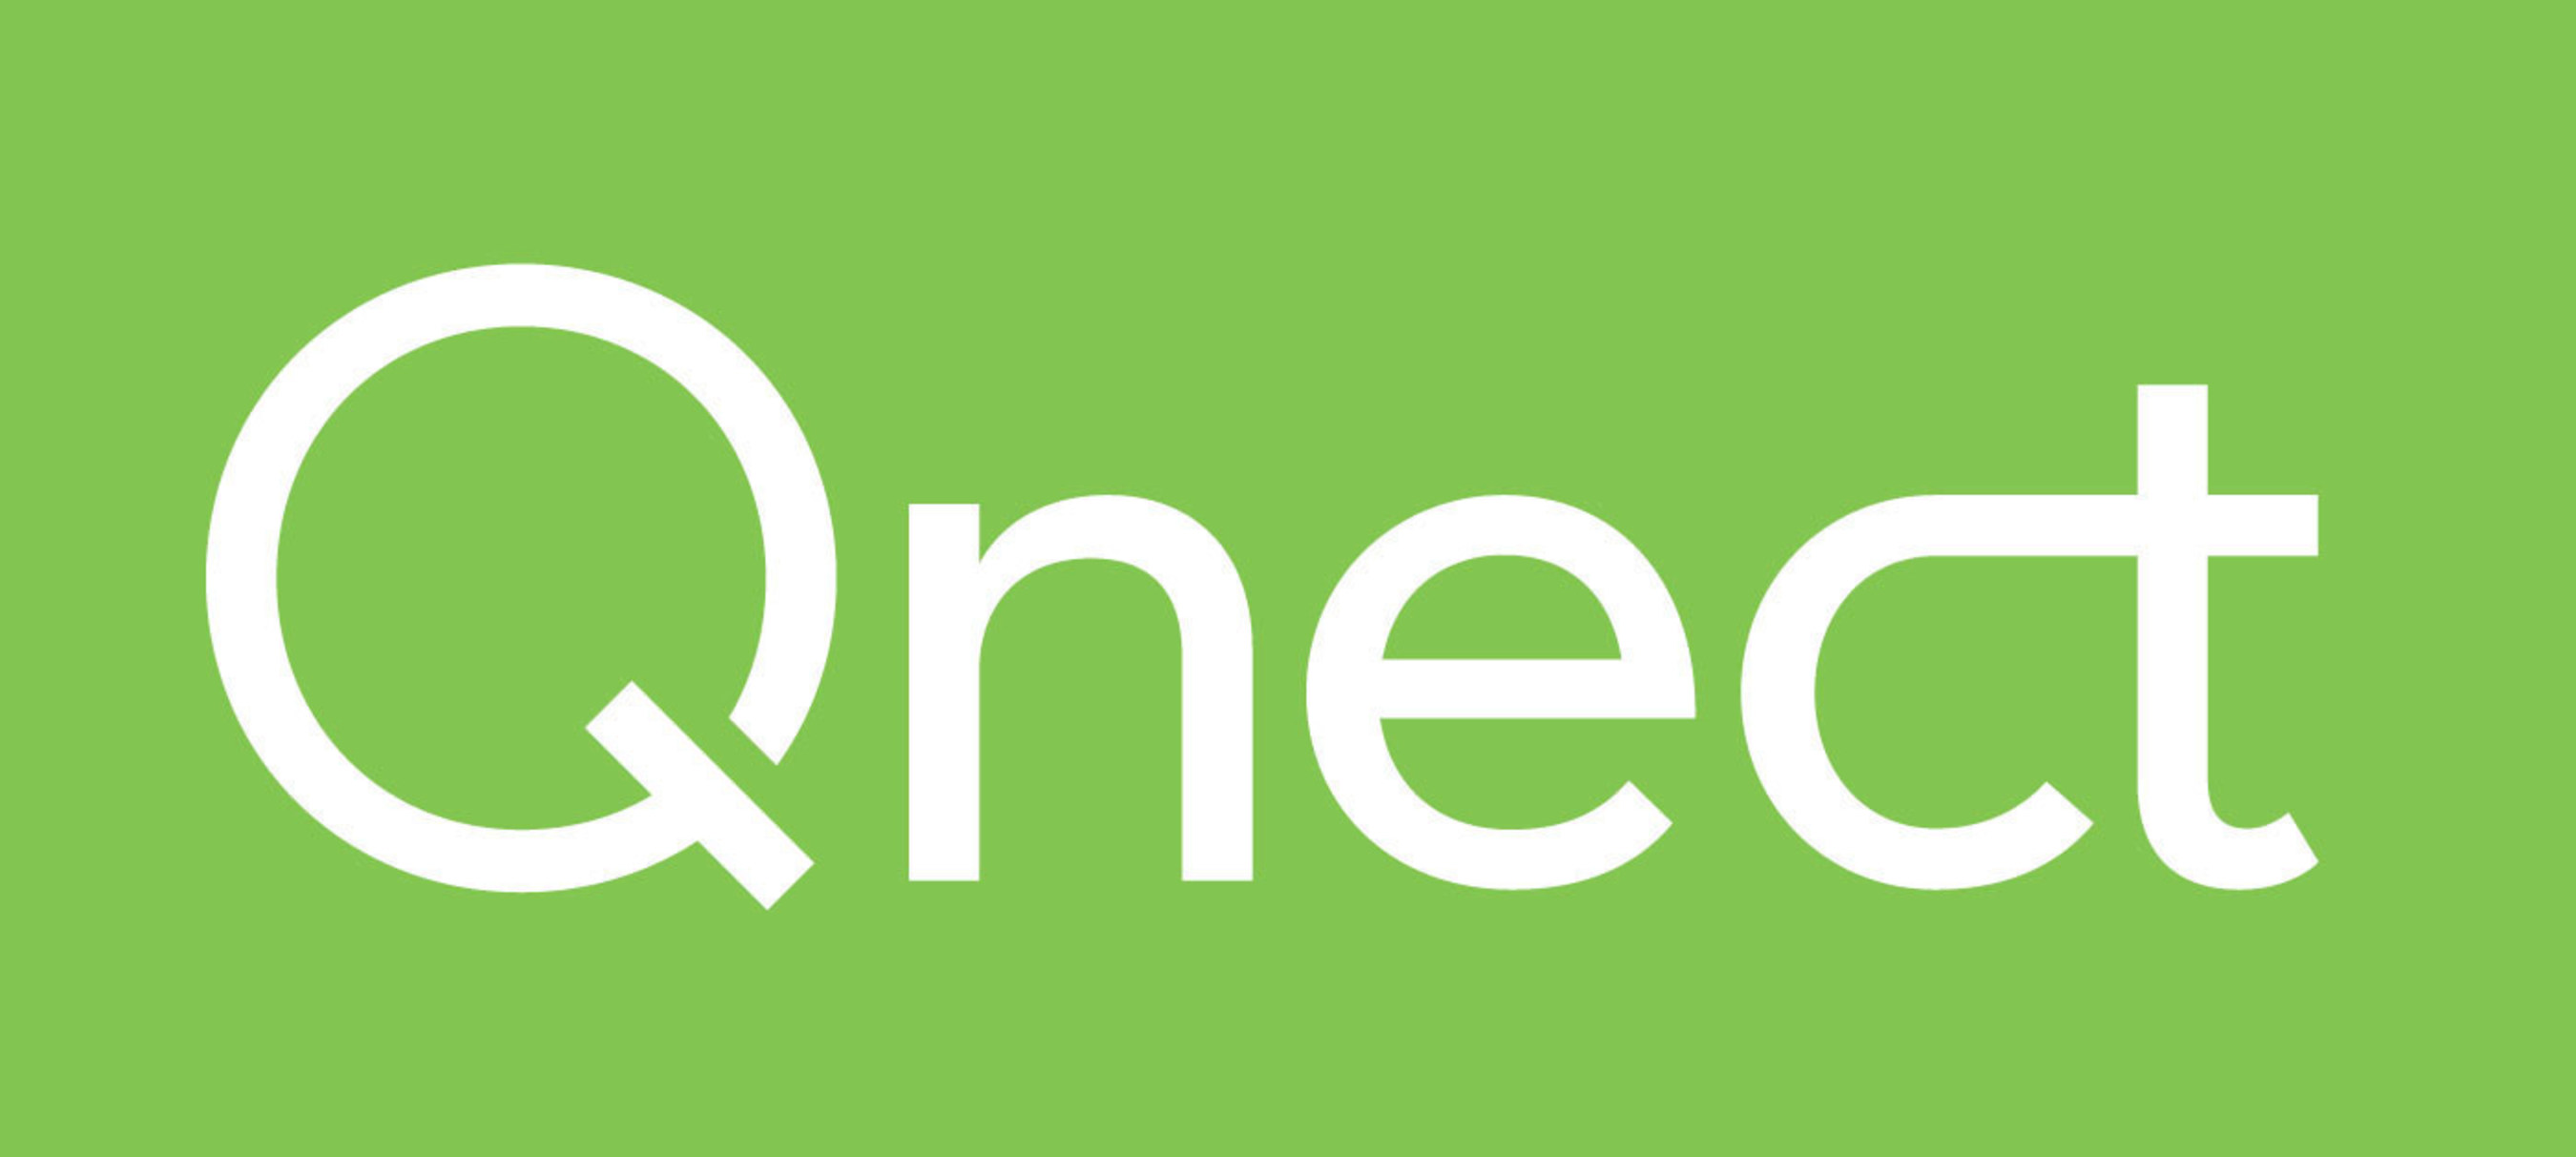 Qnect LLC joins forces with Leading Steel Fabricator, Walters Group, as a Strategic Equity Partner